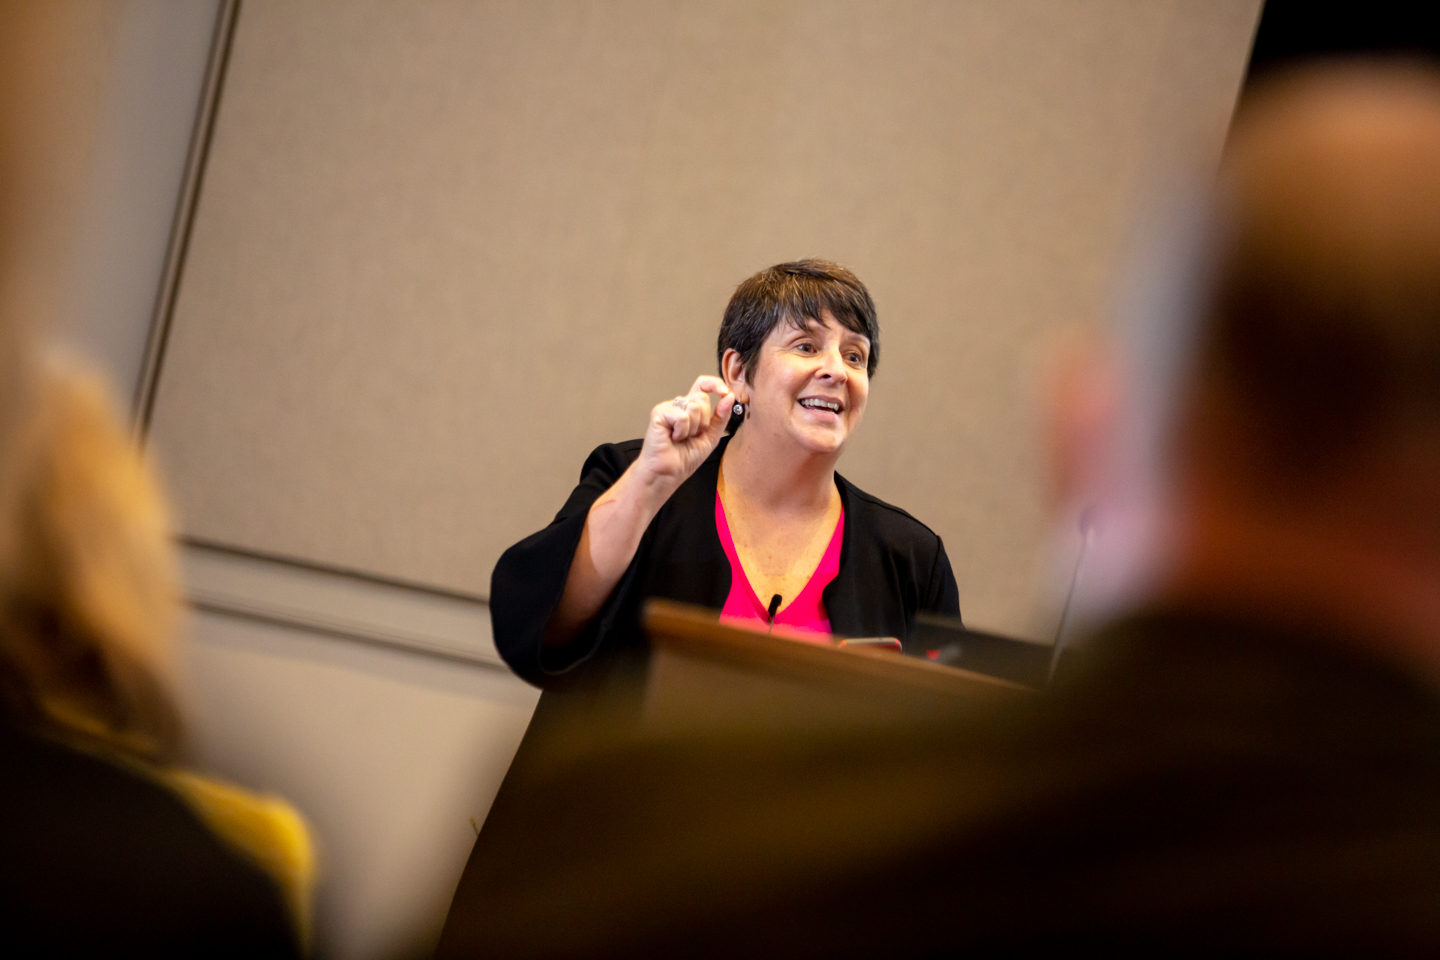 AAPPR-Conference-Expo-Professional-Event-Photography-Photographer-Orlando-speech-32.jpg